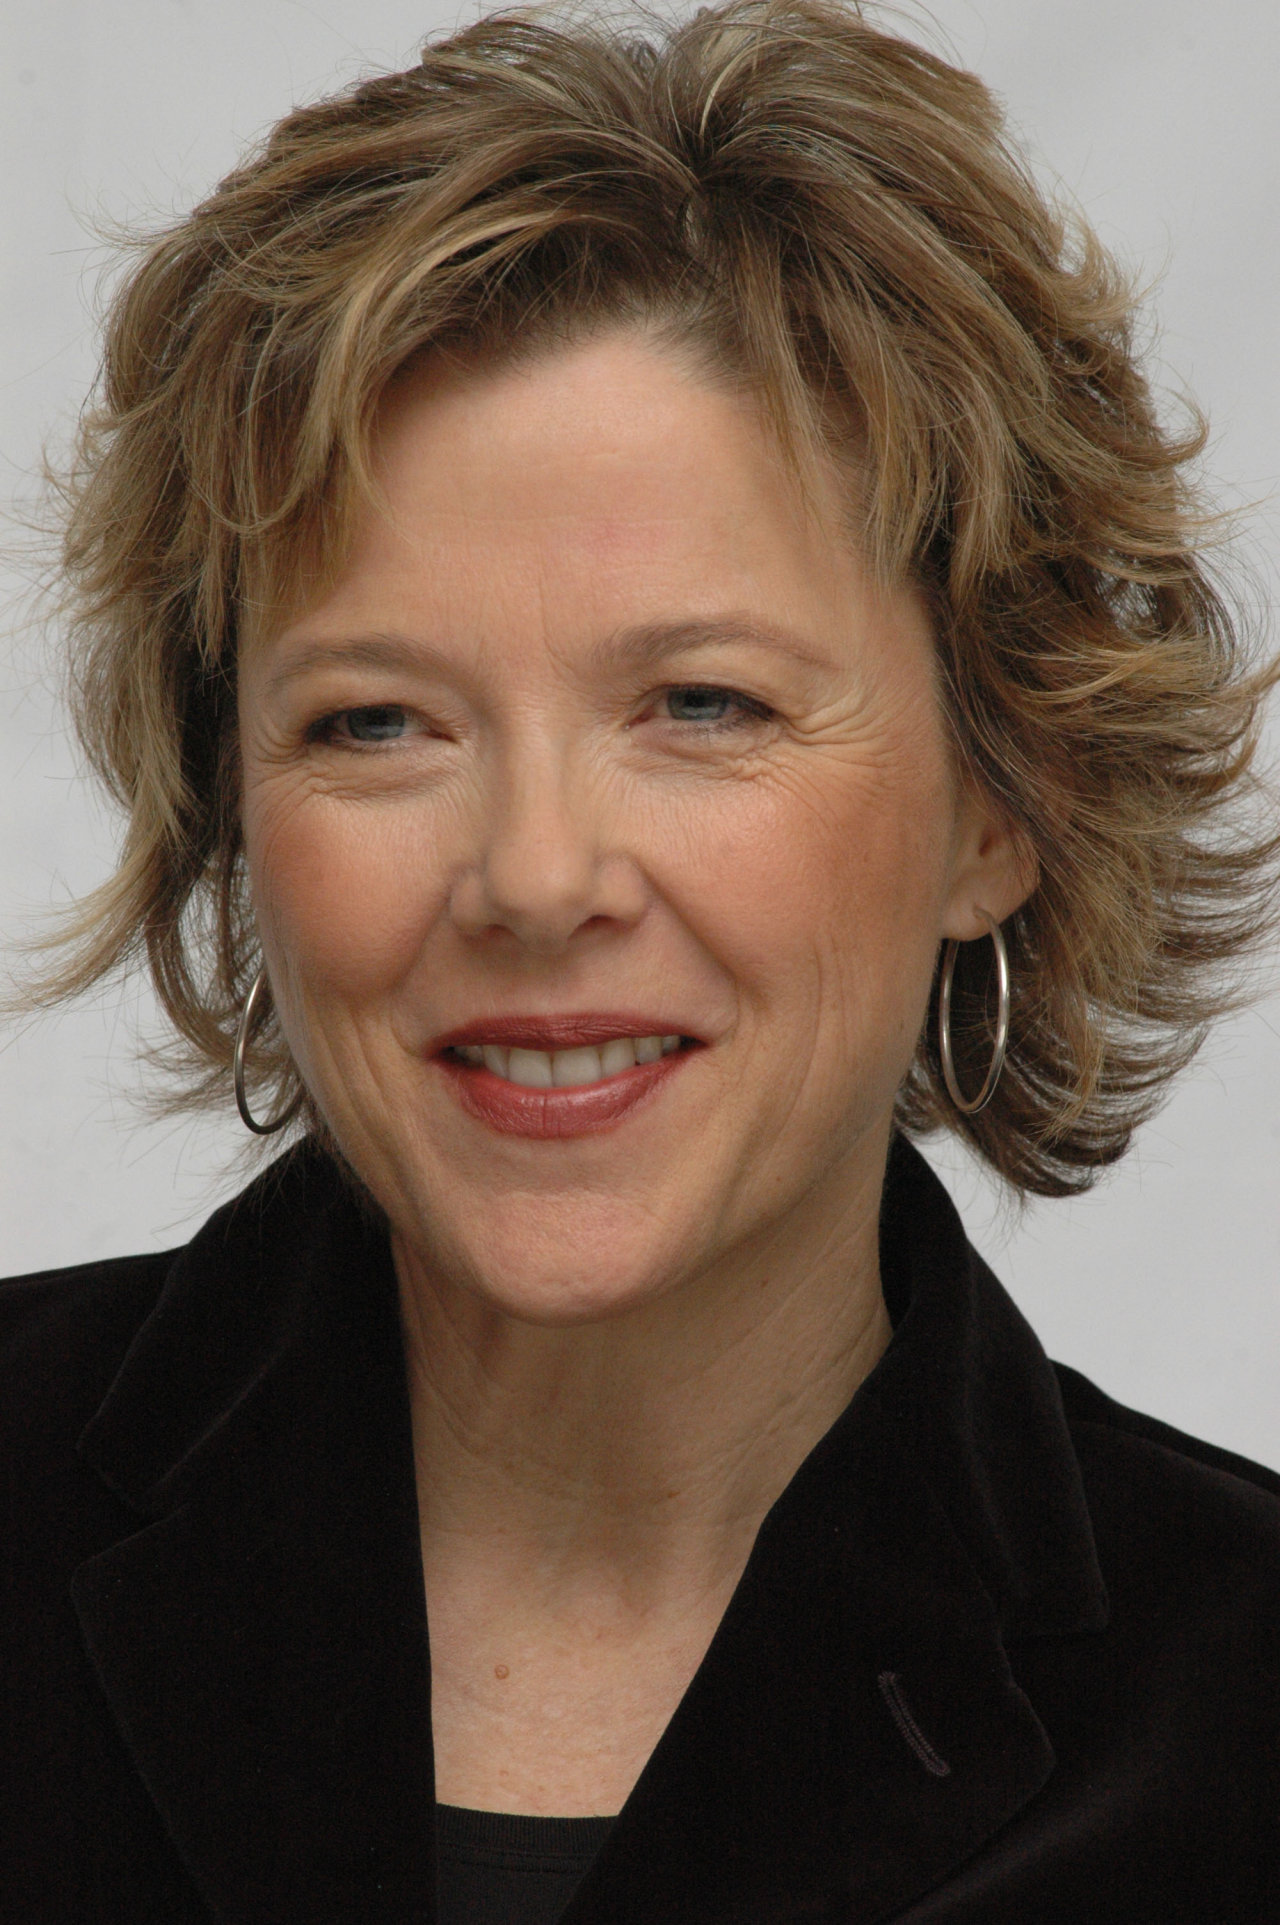 annette bening wallpaper - photo #8